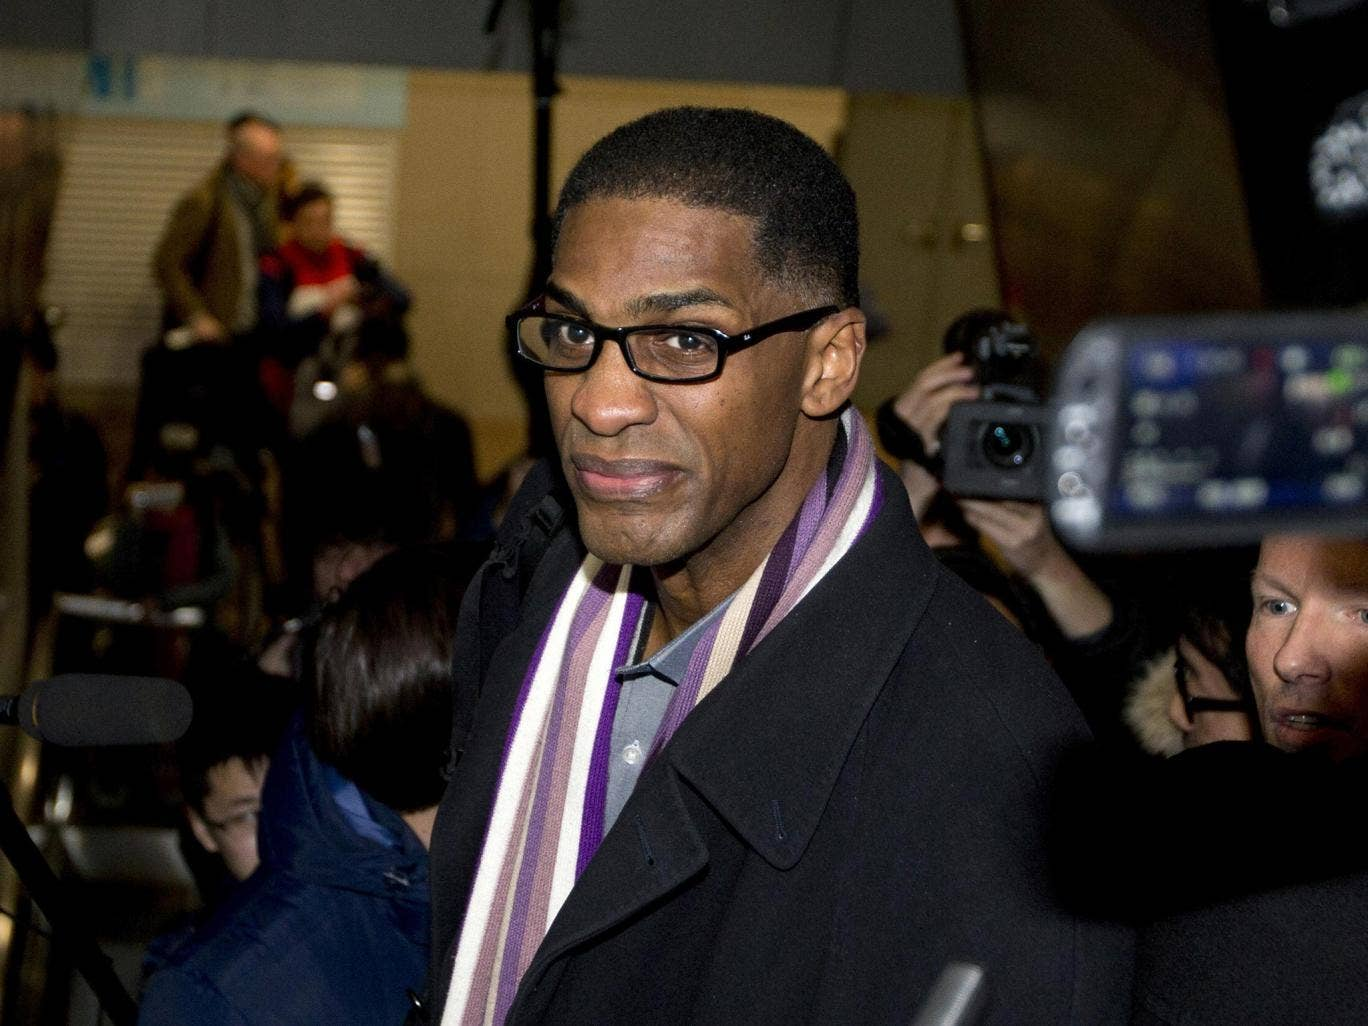 Former NBA basketball star Charles D. Smith is mobbed by journalists on an escalator upon arrival at the Beijing Capital International Airport in Beijing from Pyongyang, North Korea